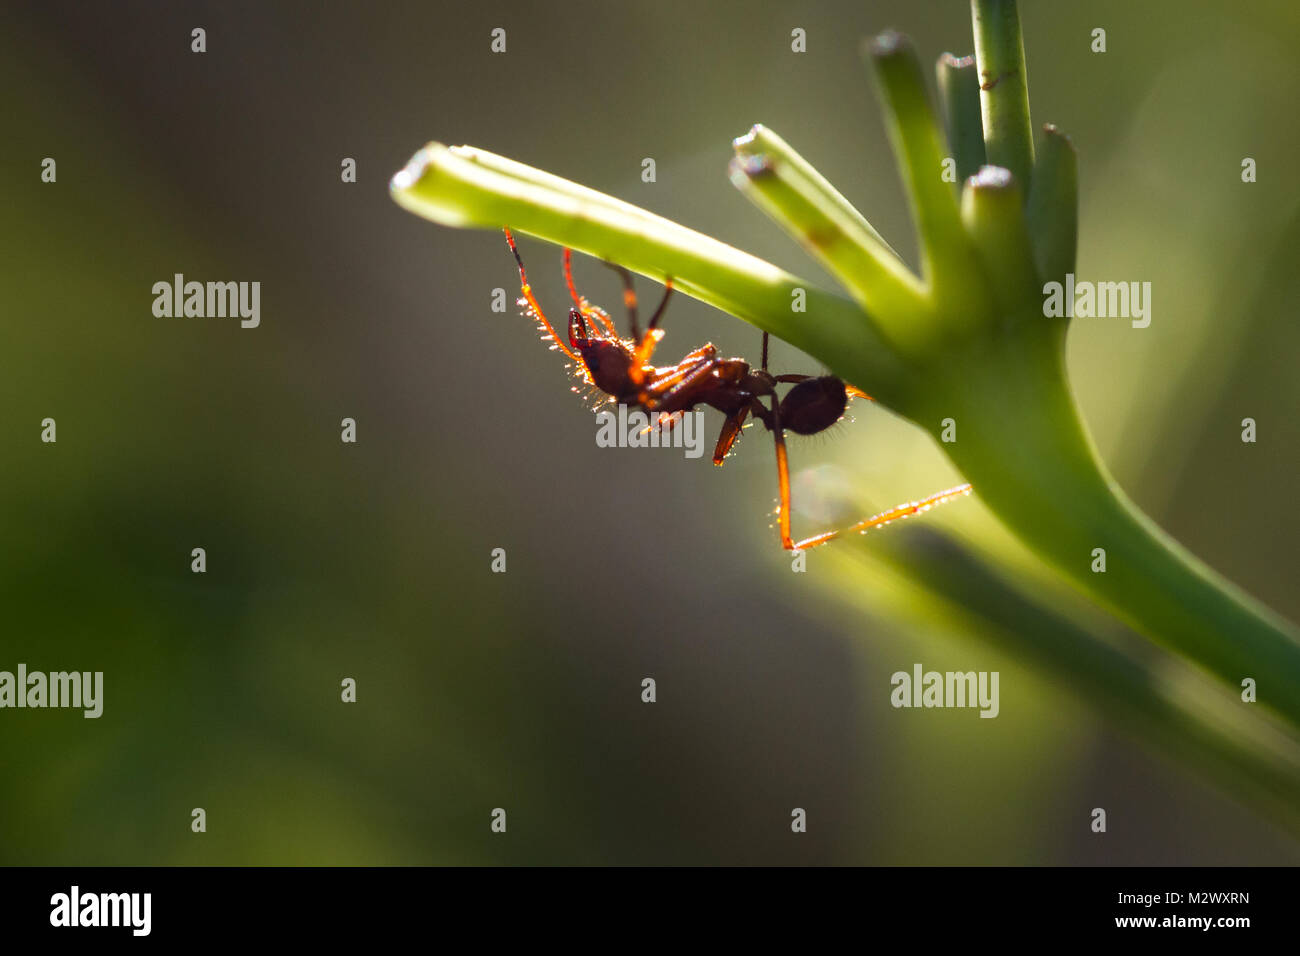 Destructive Insect Stock Photos & Destructive Insect Stock